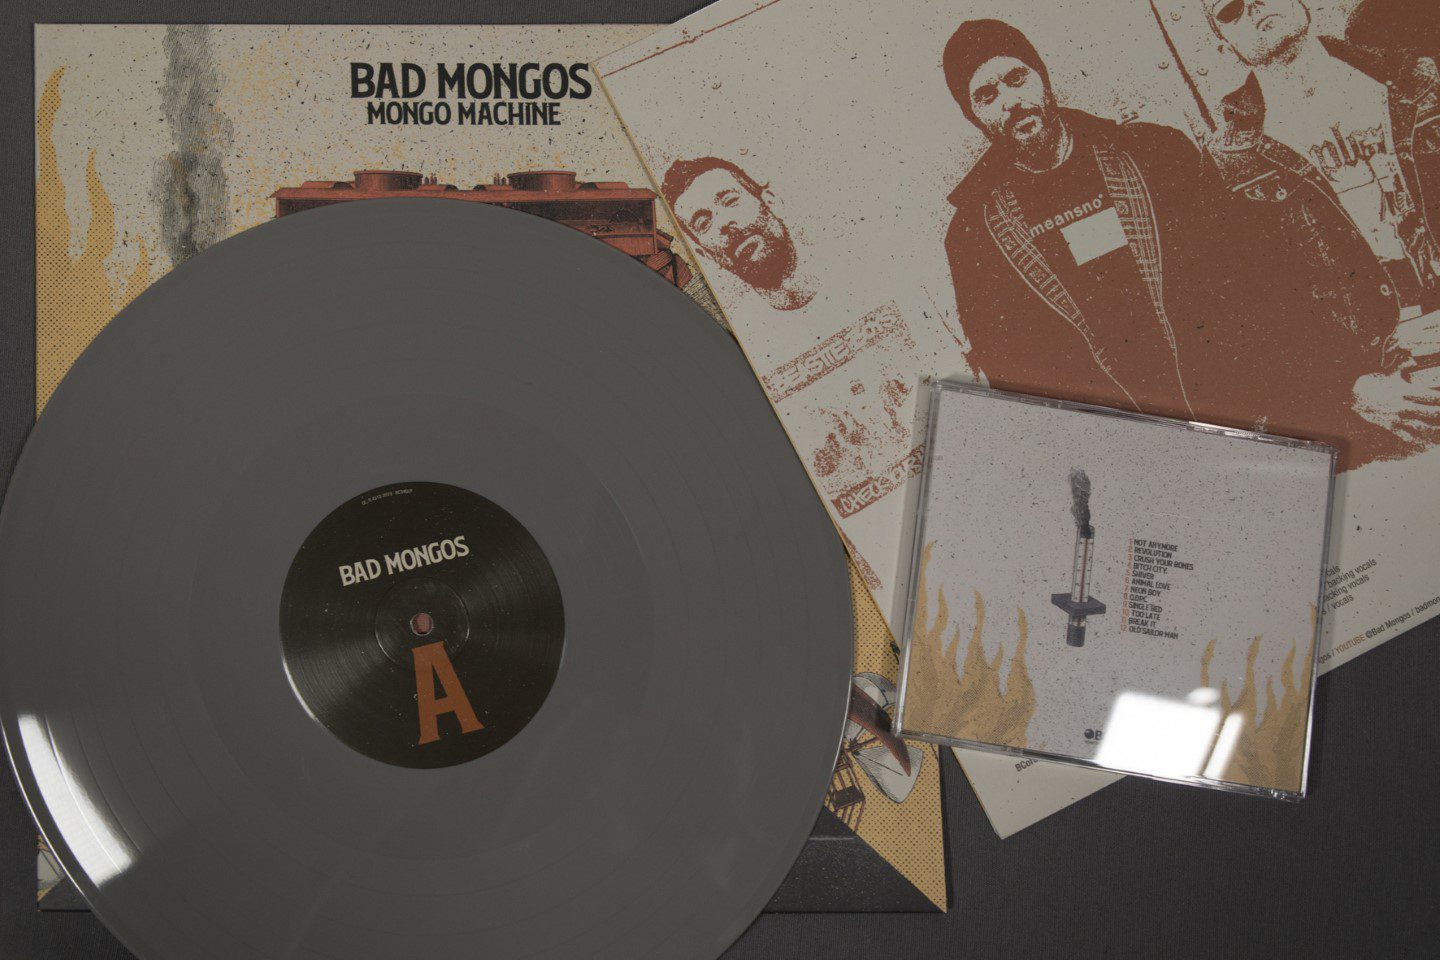 "BAD MONGOS - Mongo Machine - Vinilo 12"" + CD Jewel box"